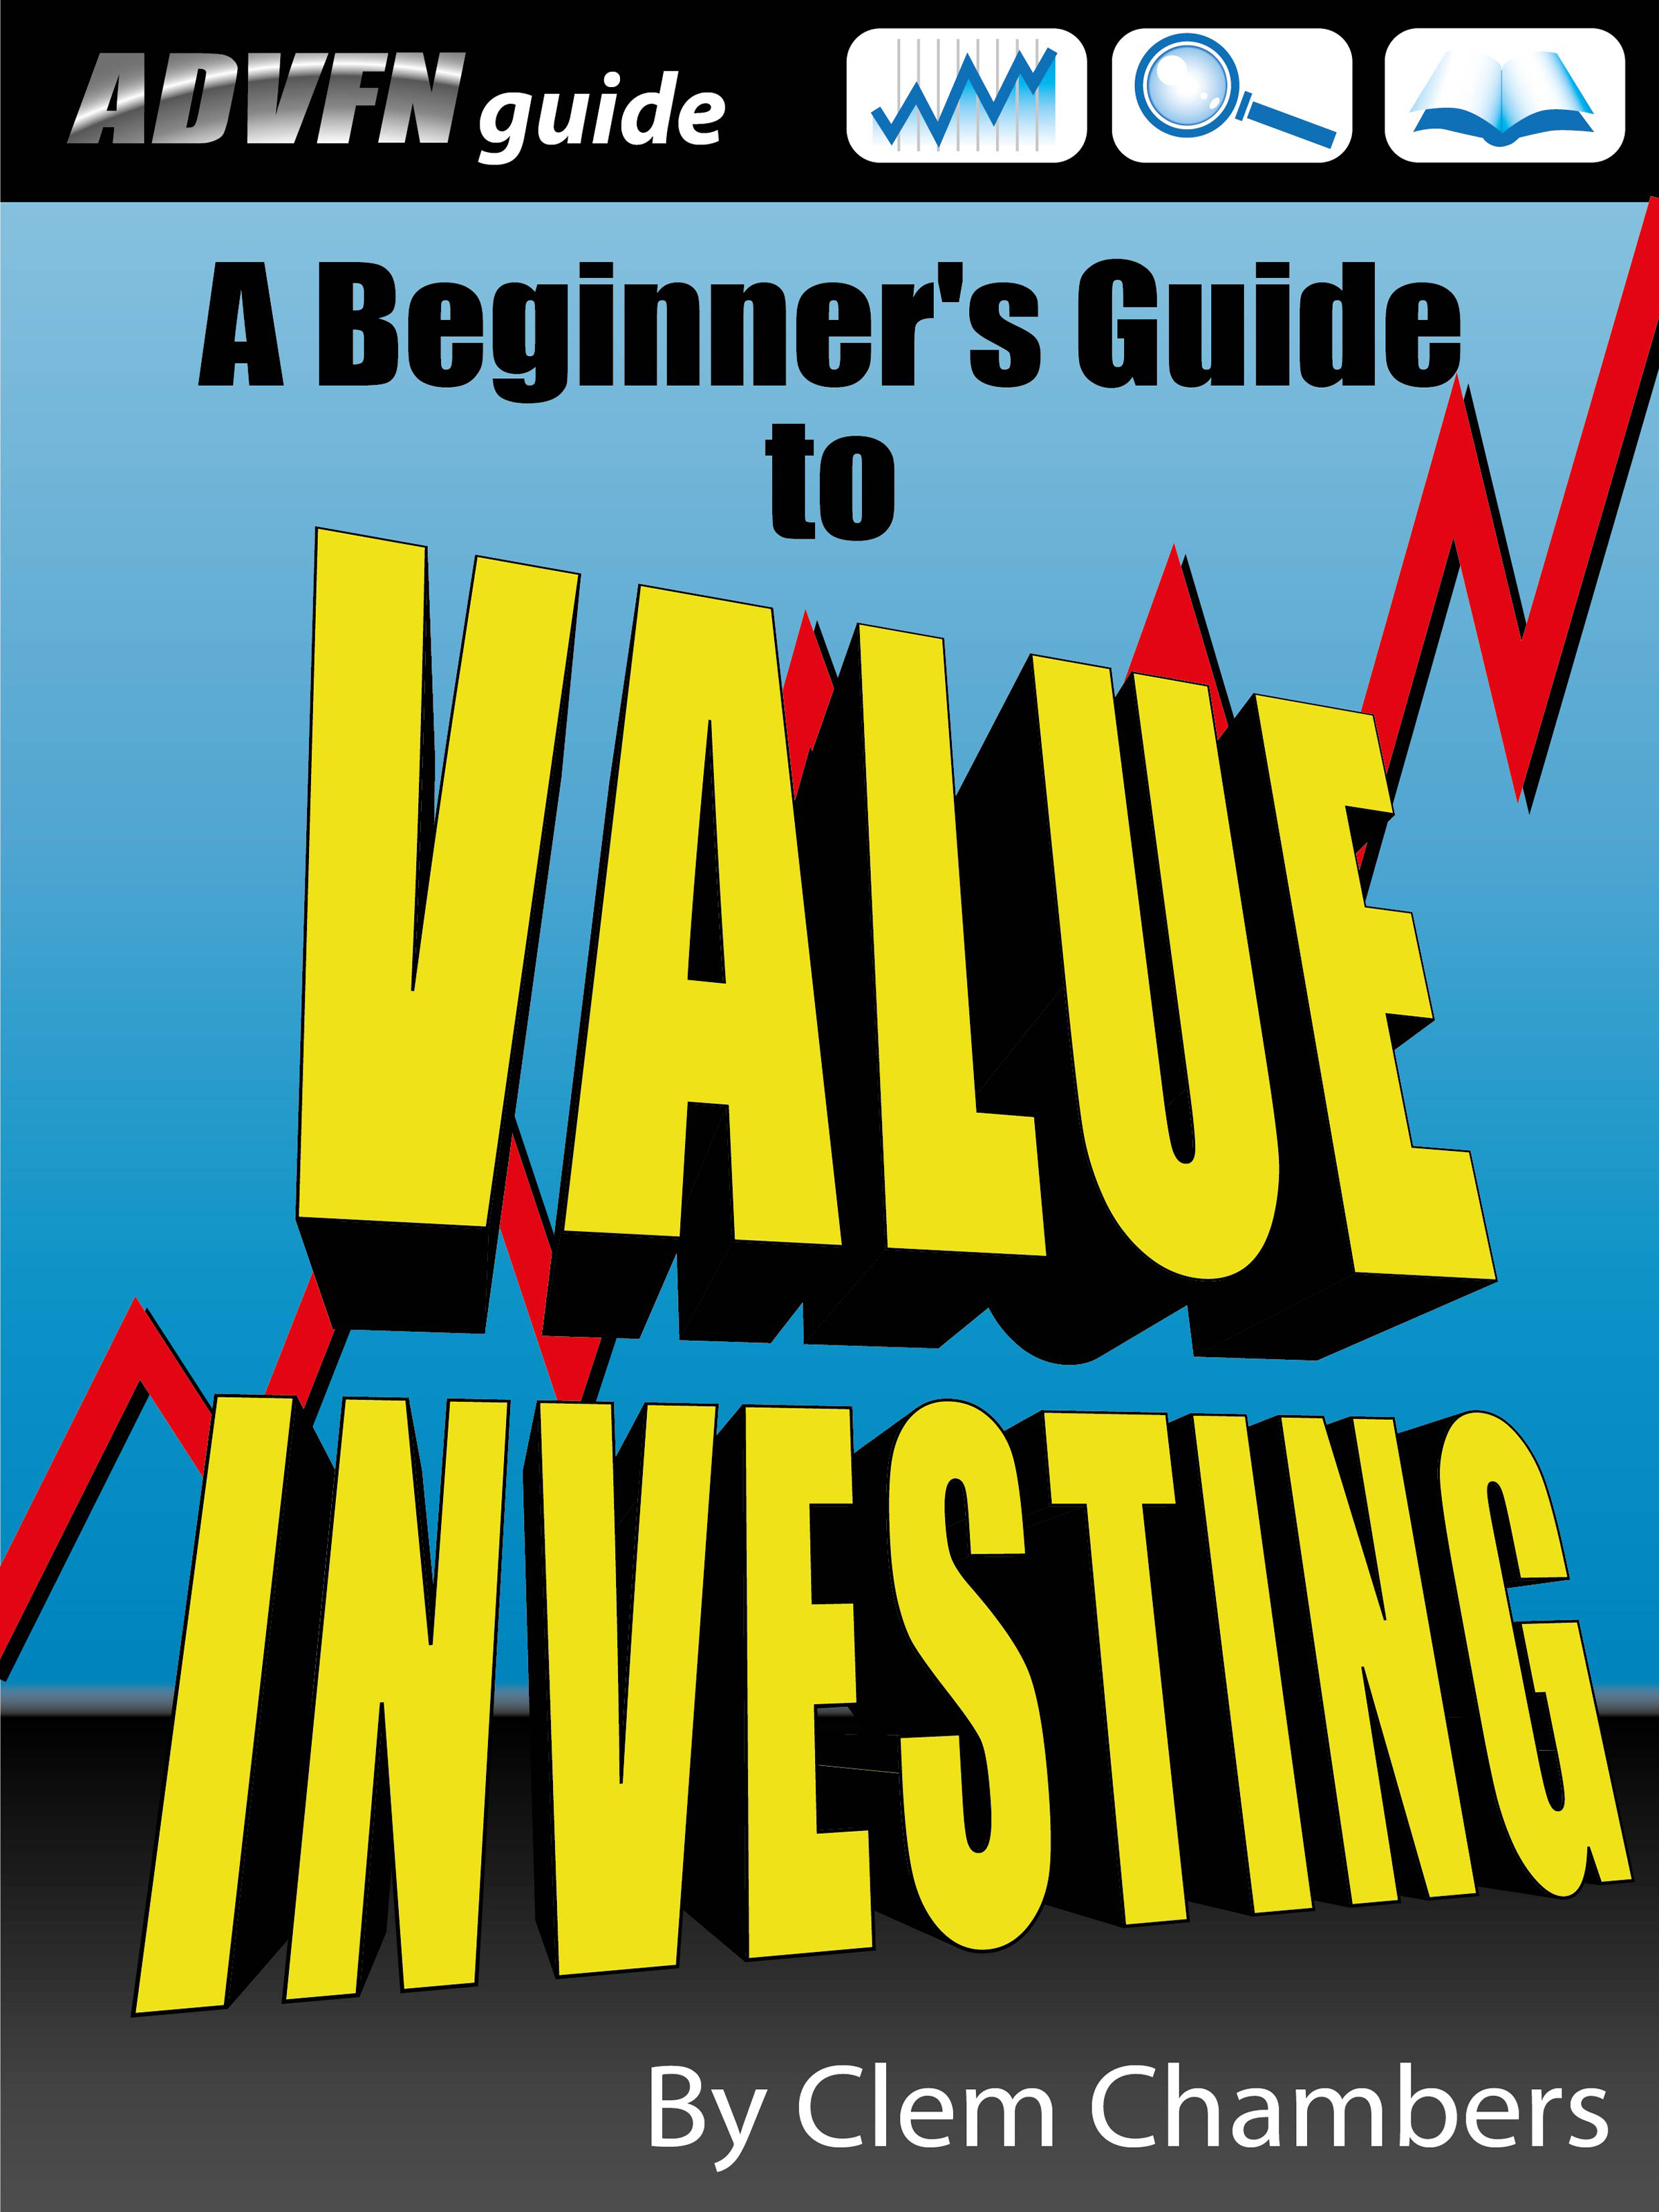 ADVFN Guide: A Beginner's Guide to Value Investing By: Clem Chambers